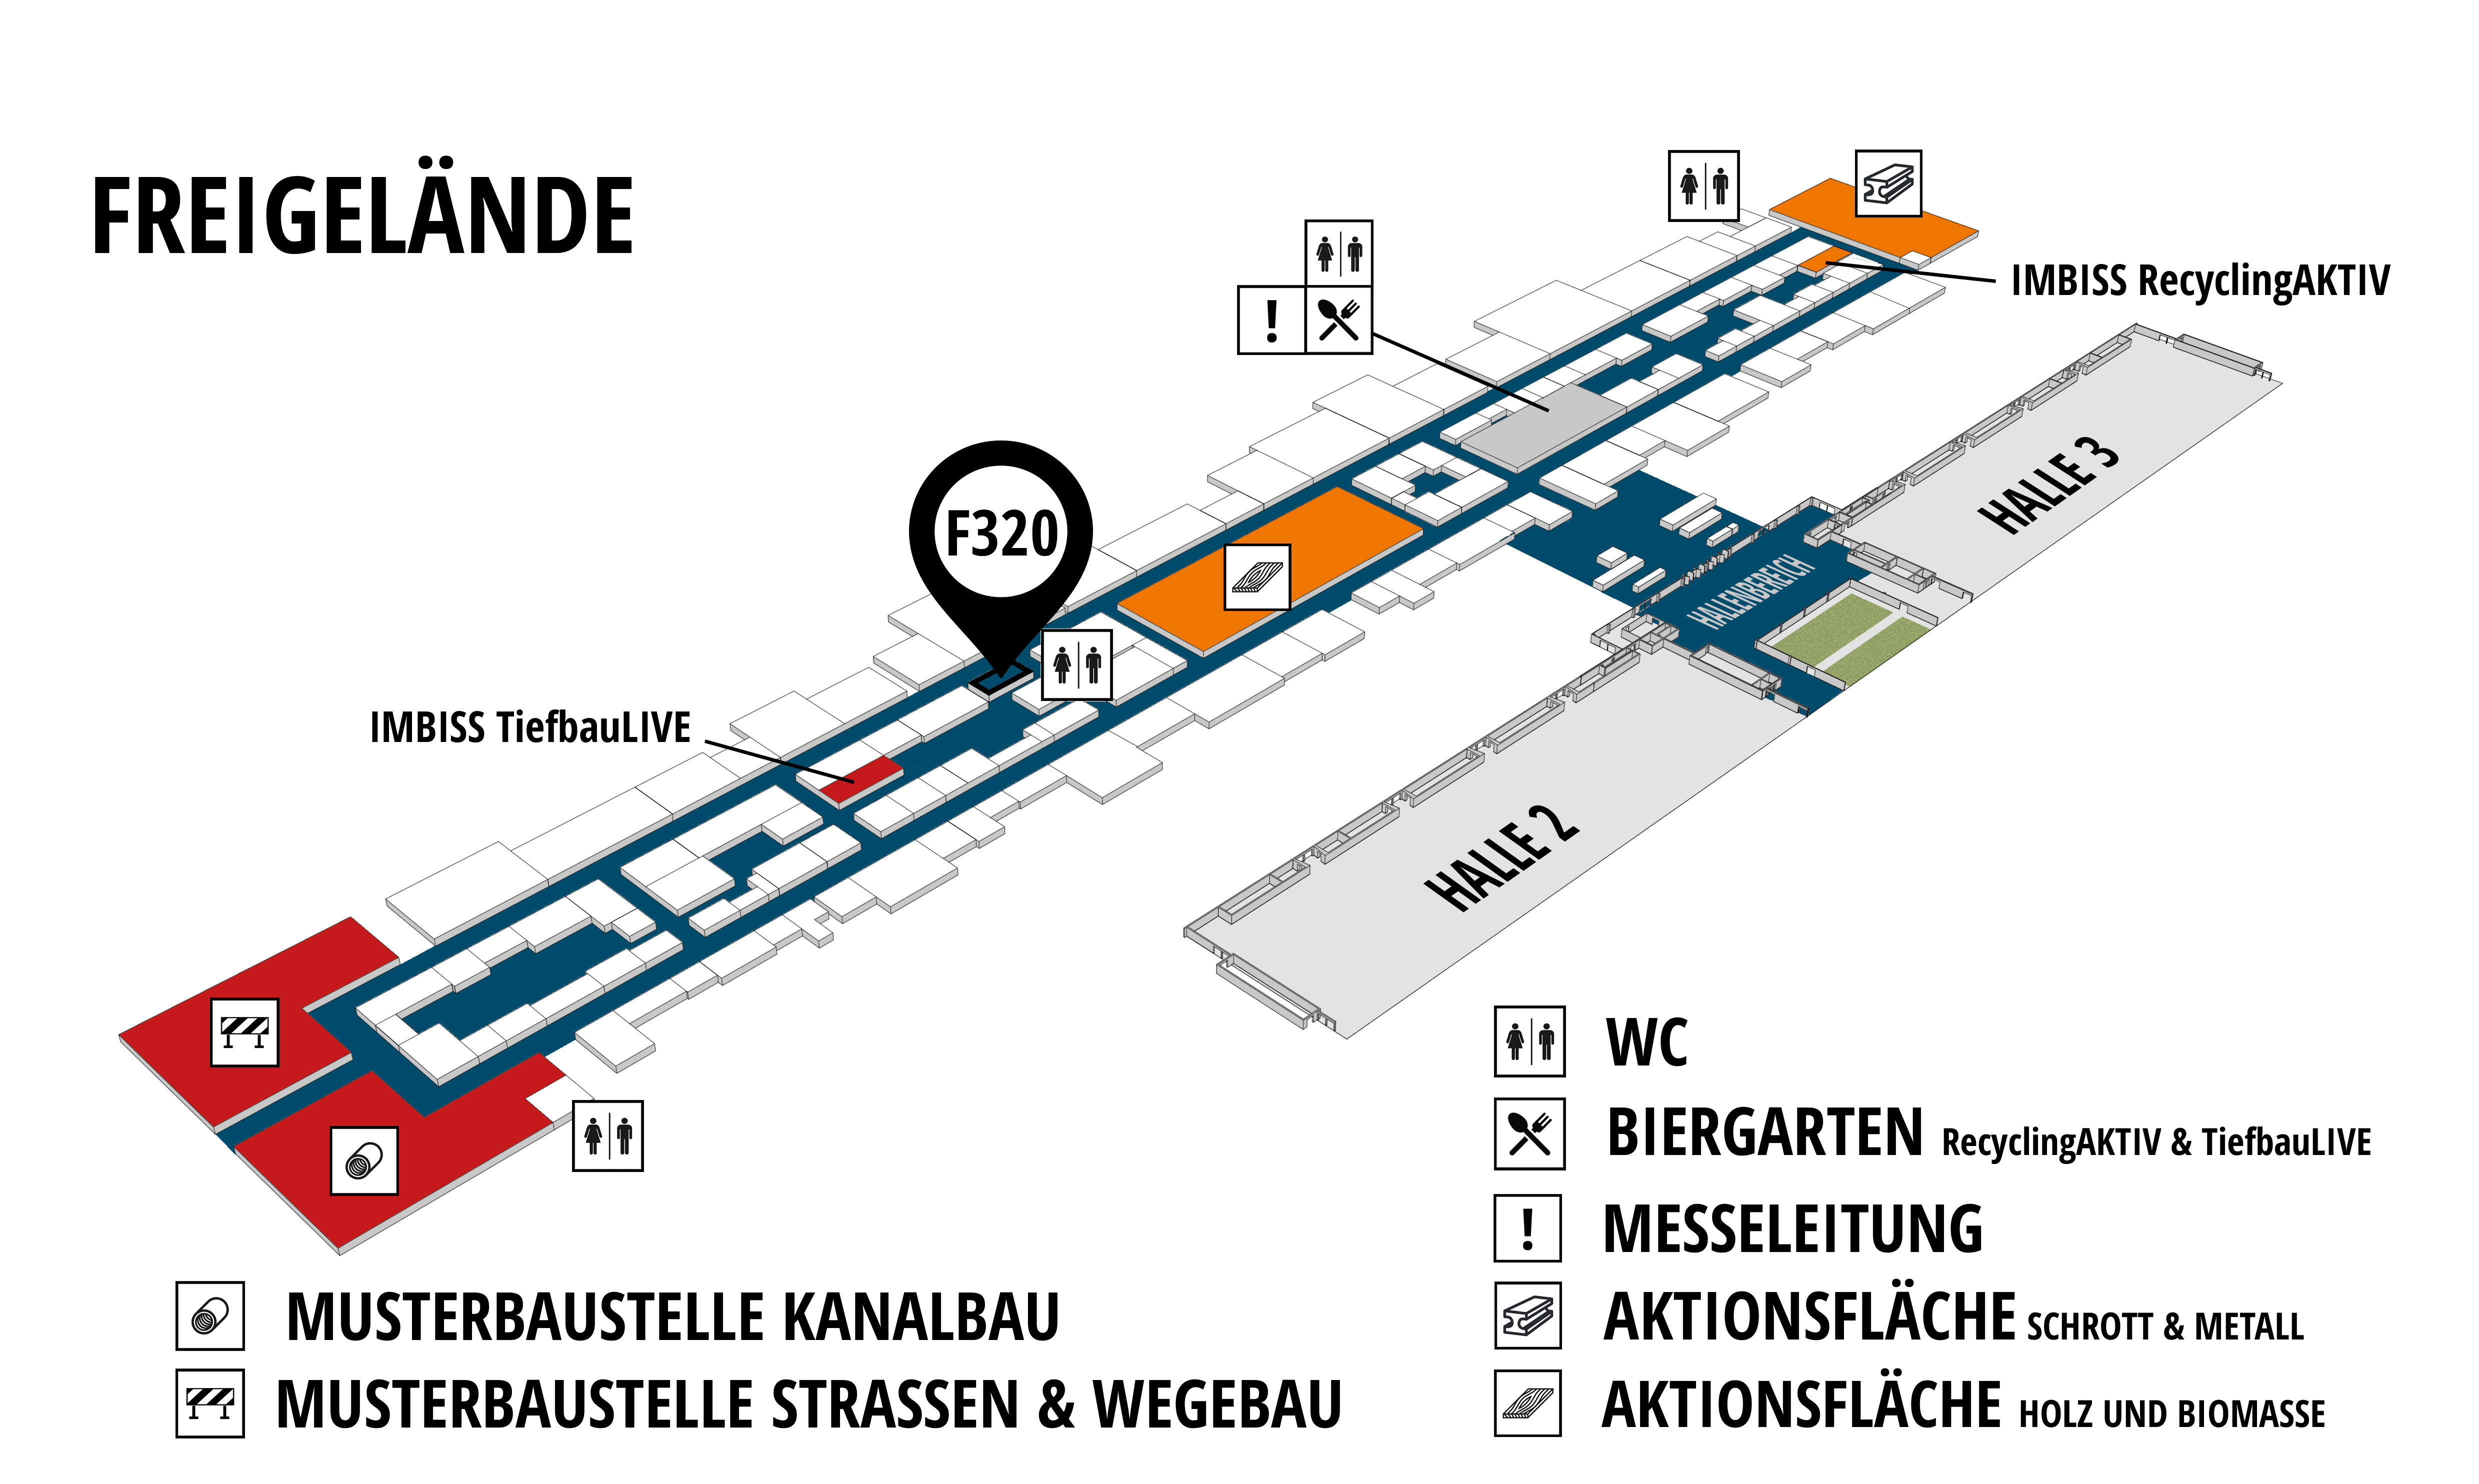 RecyclingAKTIV & TiefbauLIVE 2019. The Demonstration Trade Fairs ||Demonstration trade fair for waste removal and recycling. Demonstration trade fair for road construction and civil engineering. hall map (Outdoor area (east)): stand F320